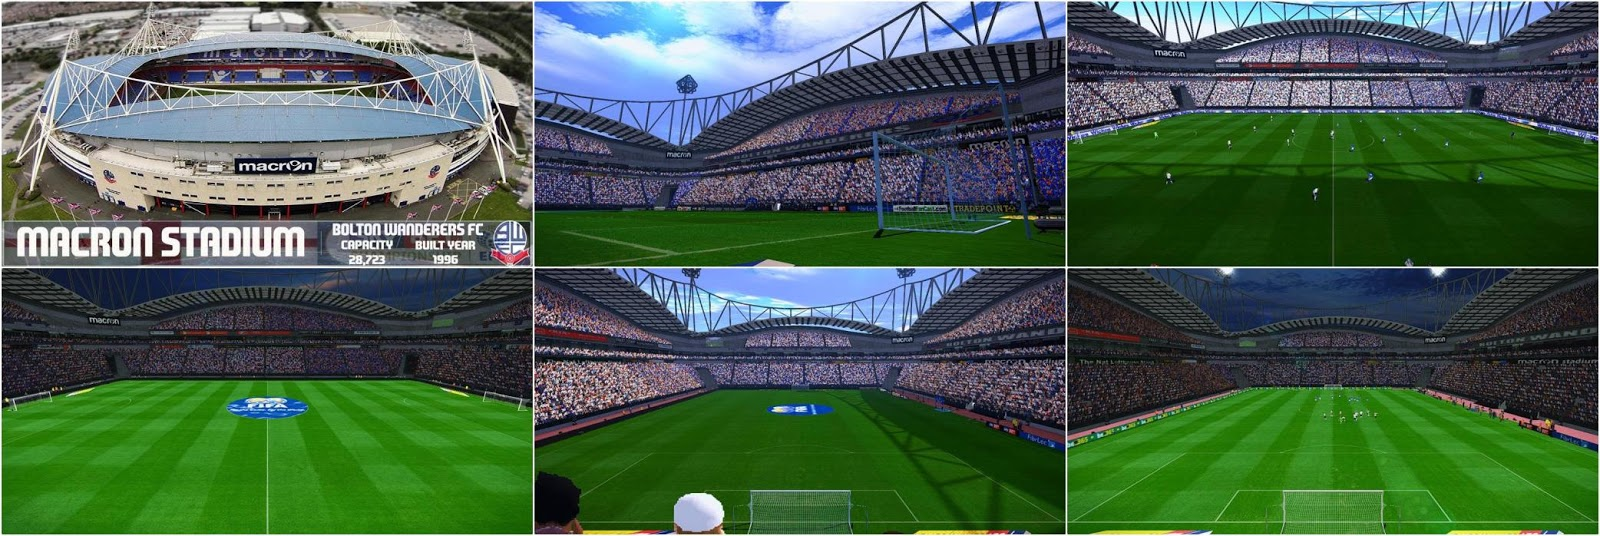 PES 2017 Macron Stadium (Bolton Wanderers F.C.) by NaN RiddLe 08